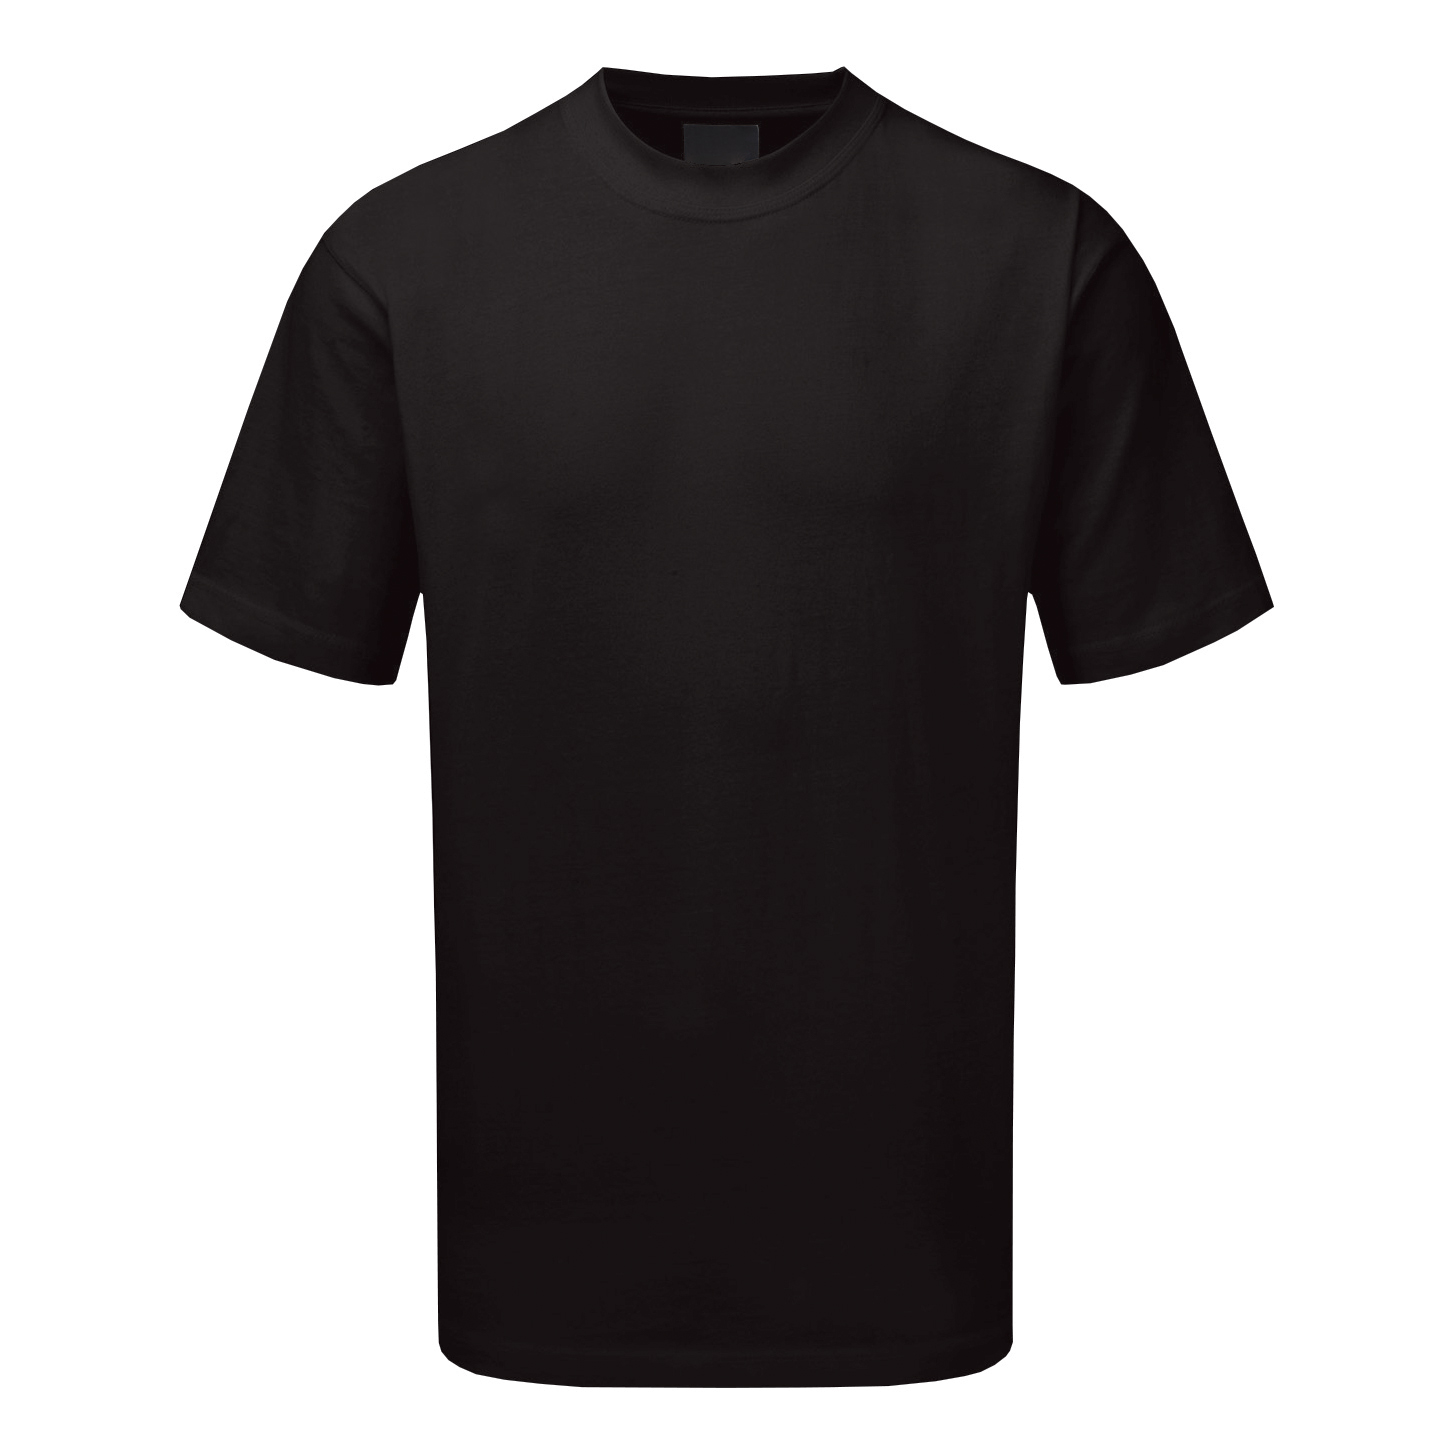 Premium T-Shirt Polycotton Triple Stitched Size 4XL Black